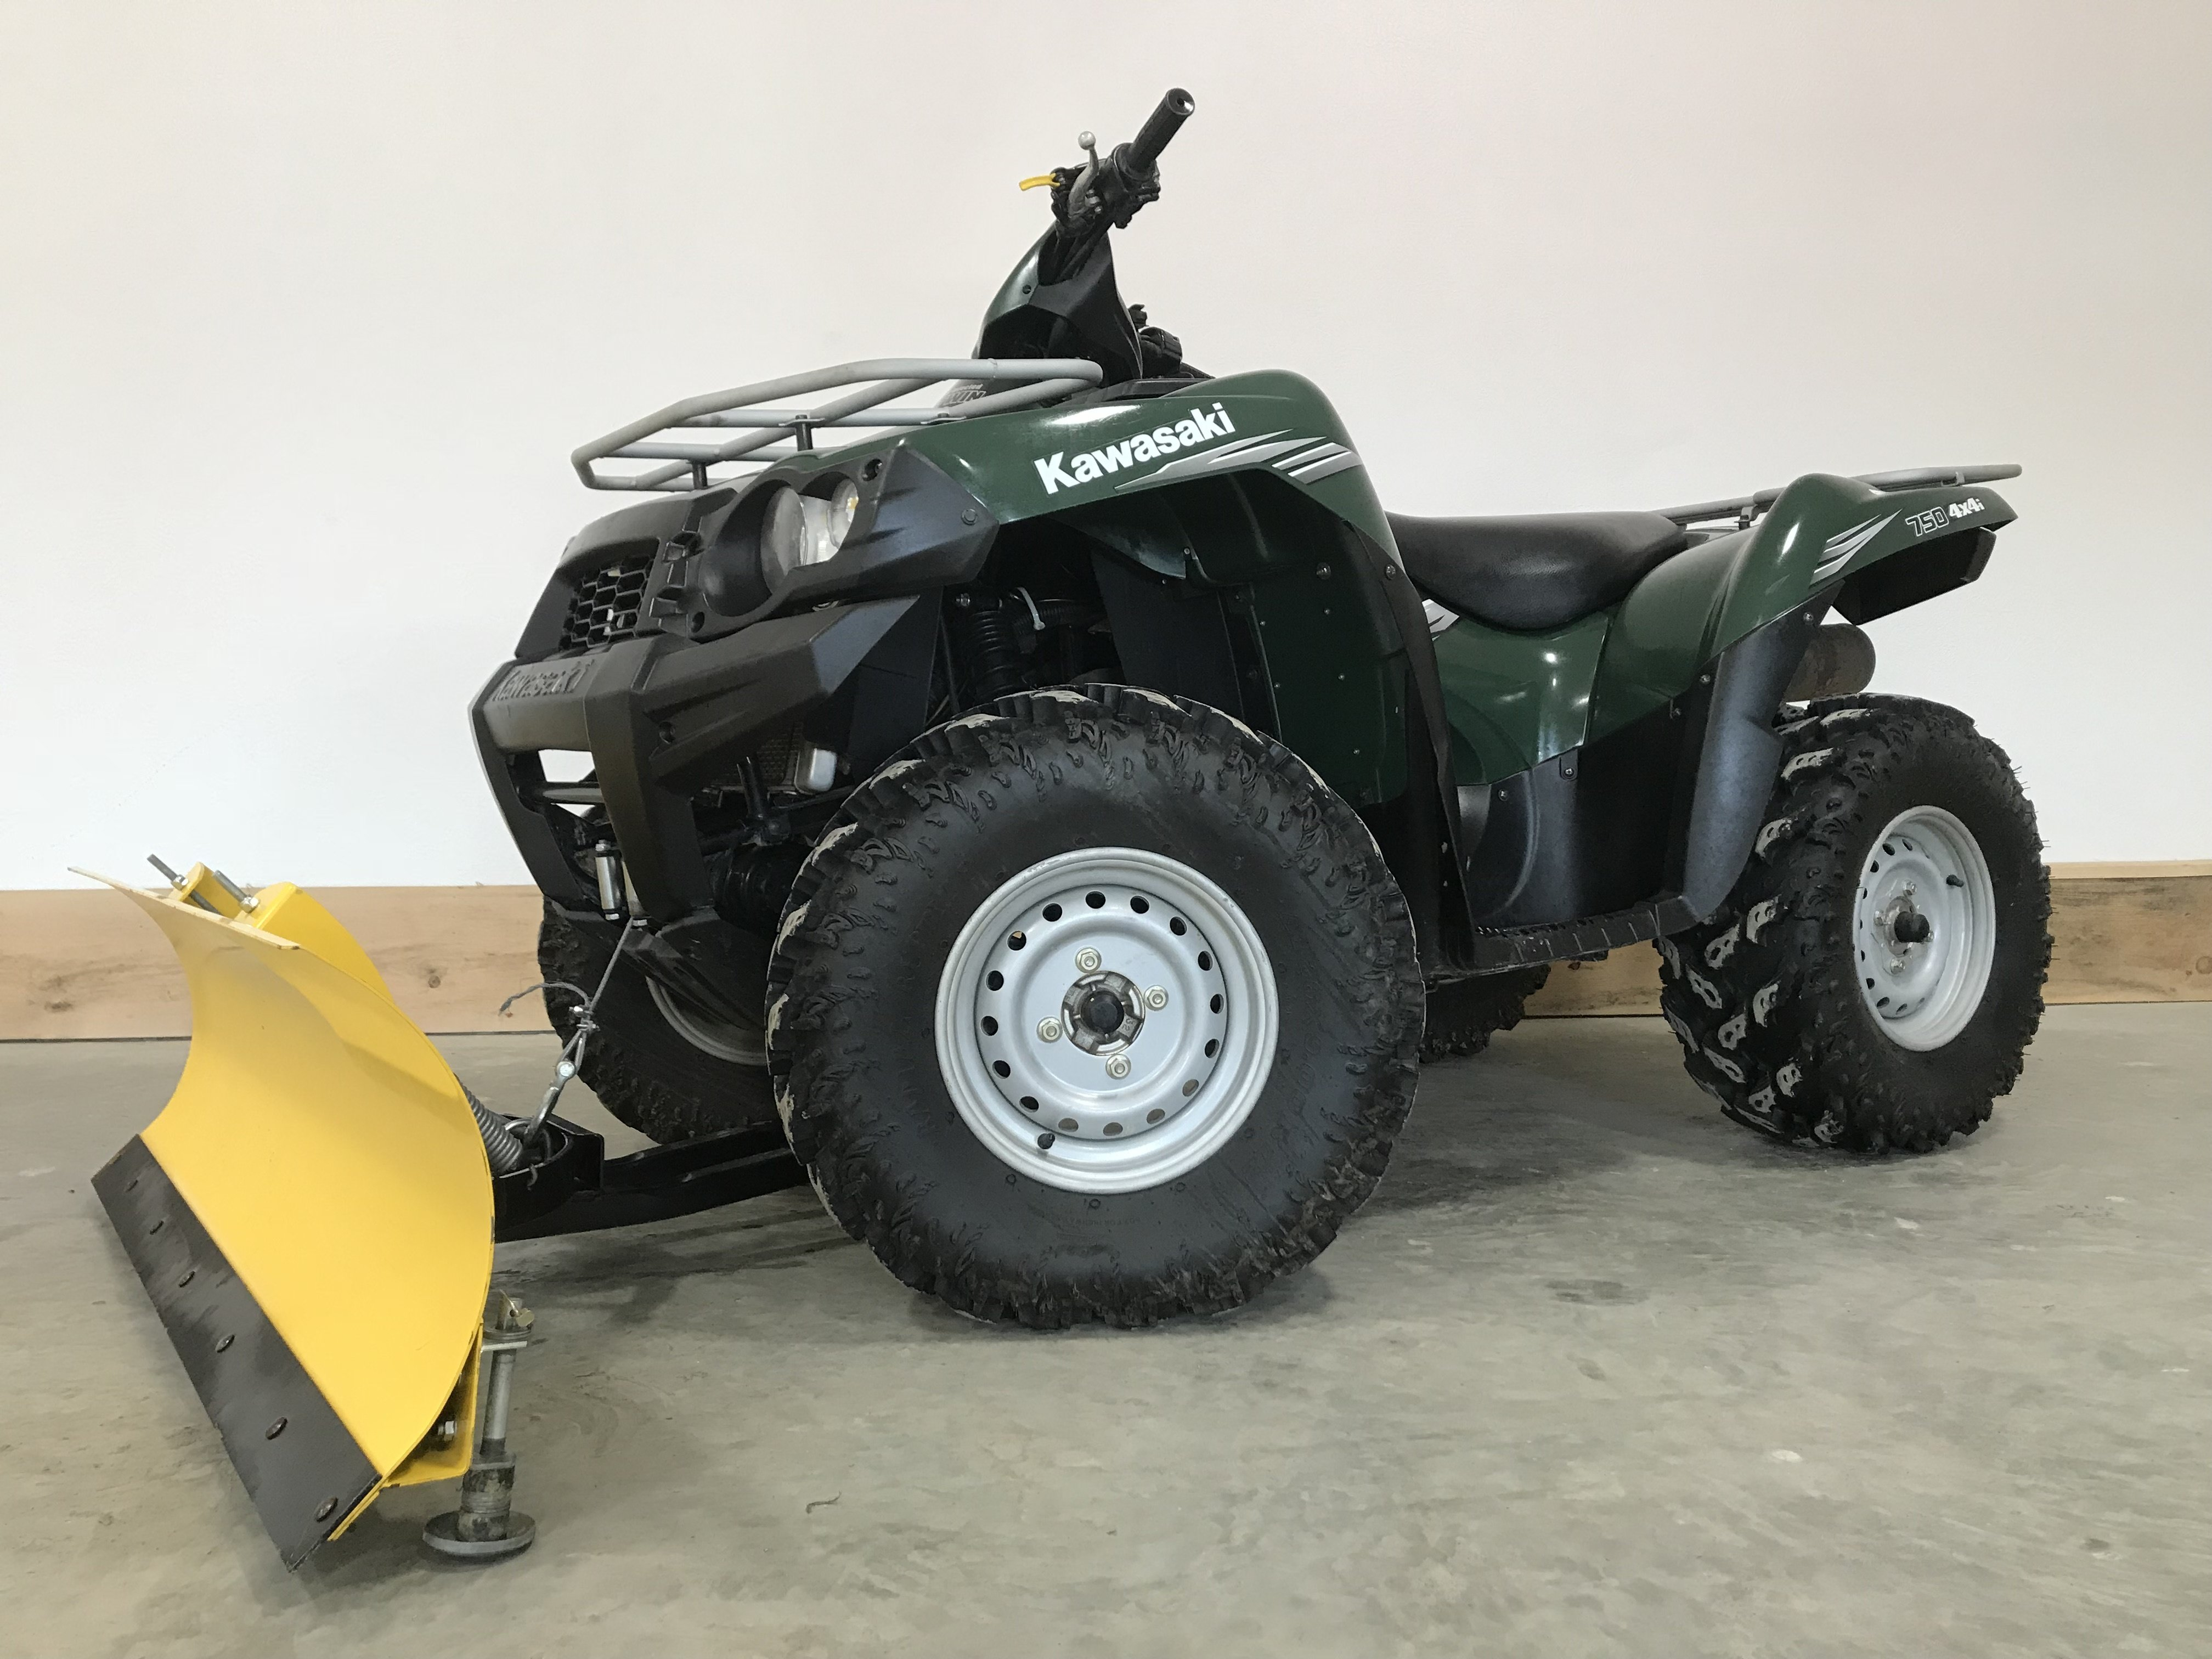 2011 Kawasaki Brute Force 750 4x4 - Nearly New Condition 79524